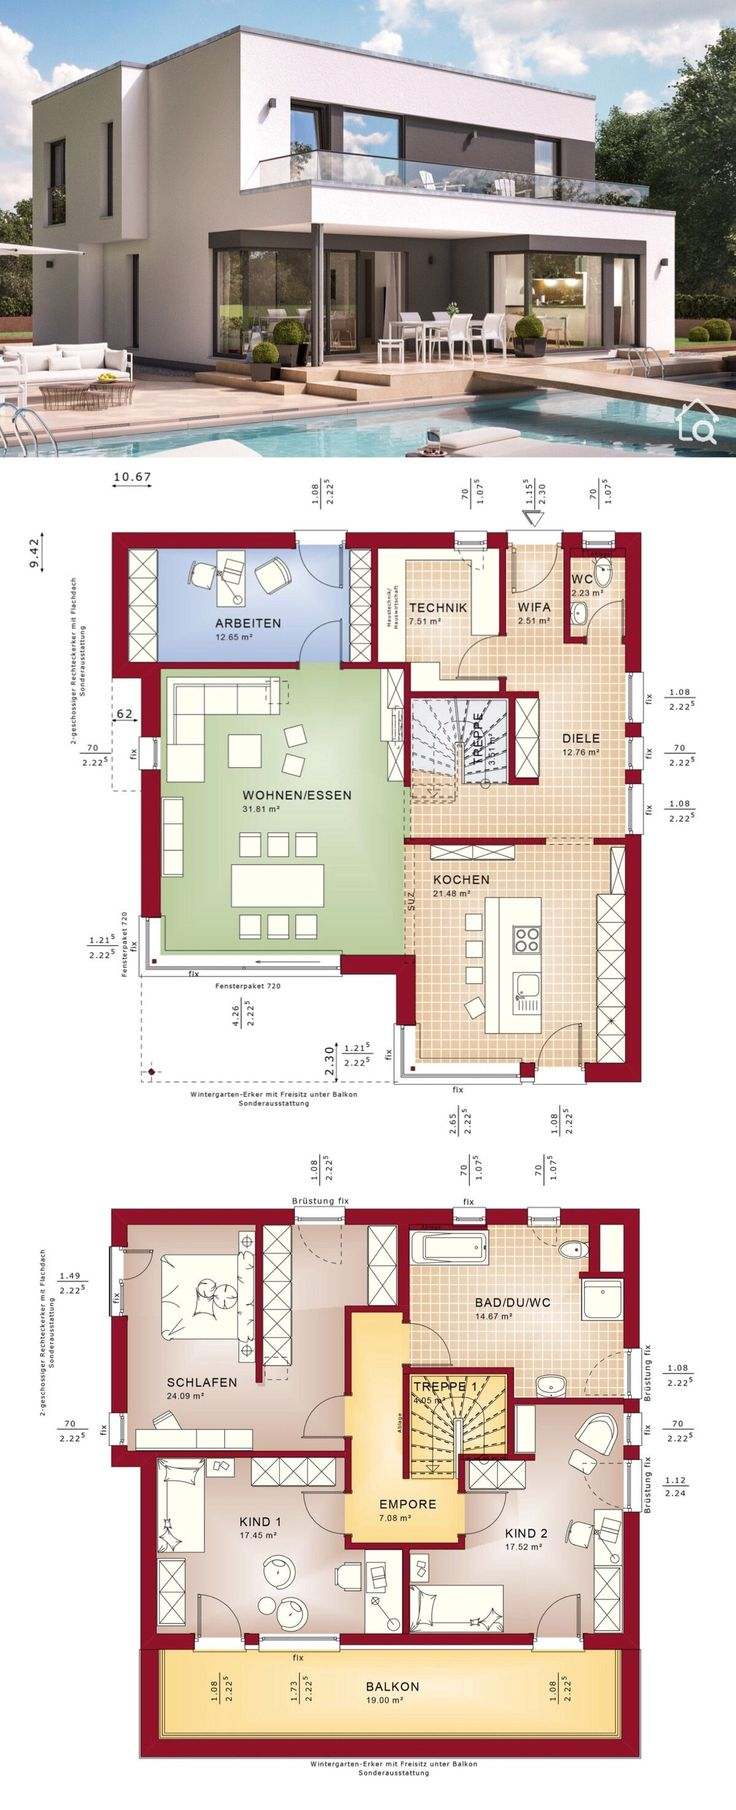 House Floor Plans Small Villa with 2 Story, 4 Bedr…